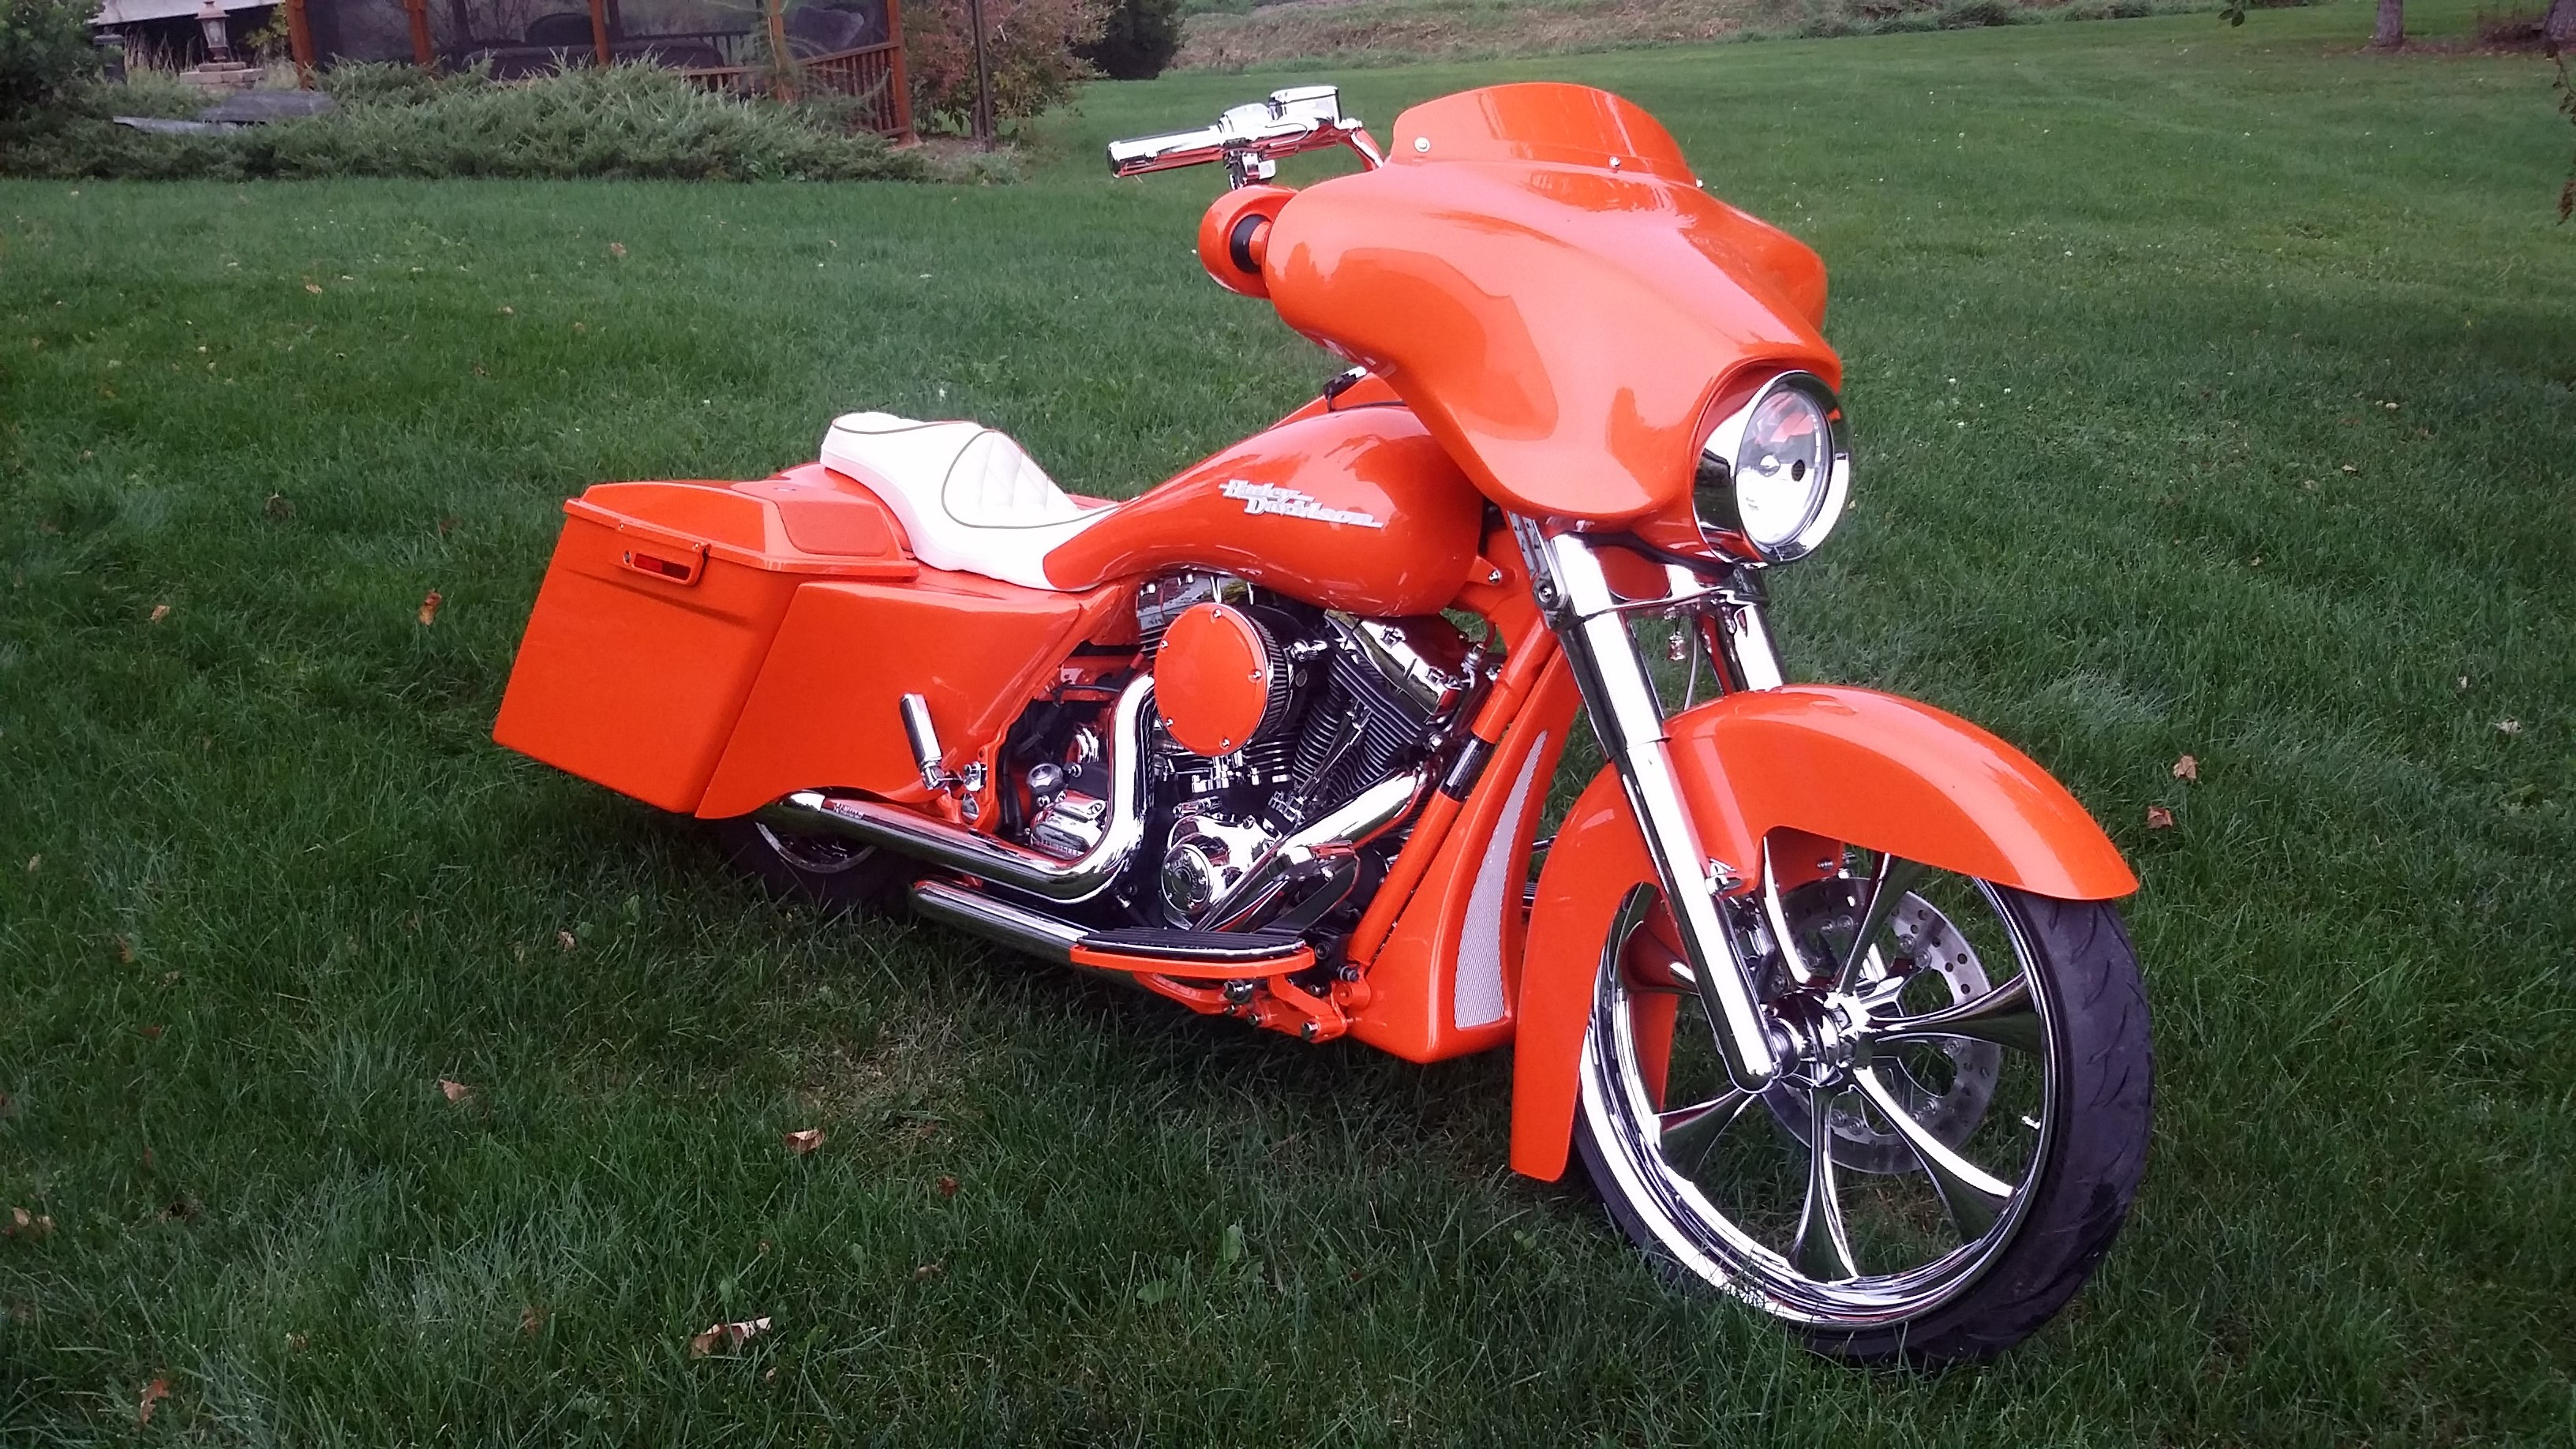 2009 Harley Davidson 174 Flhx Street Glide 174 Orange House Of